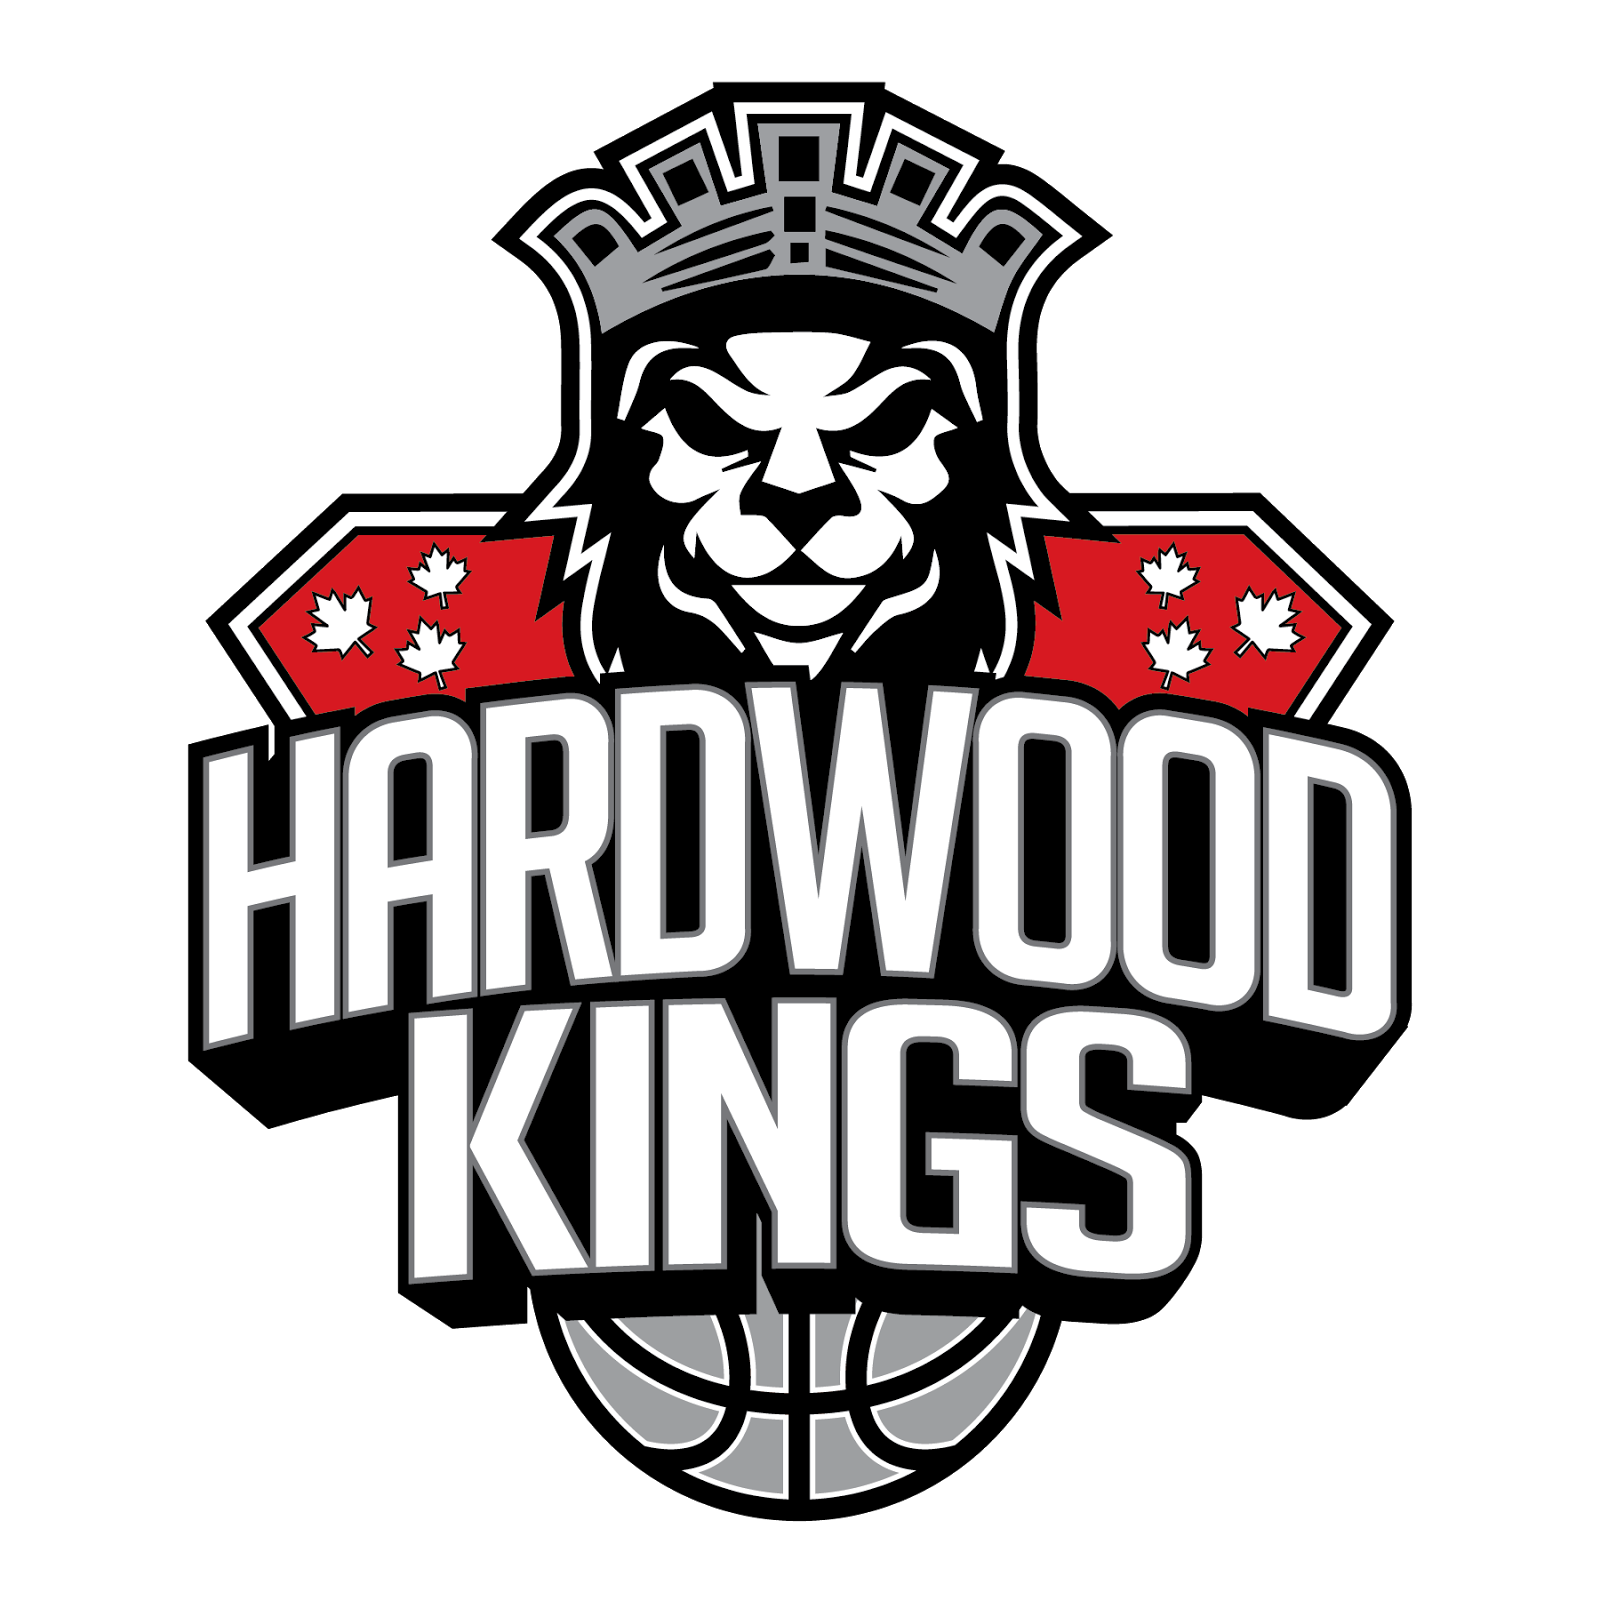 BRAMPTON HARDWOOD KINGS AAU: May 2014